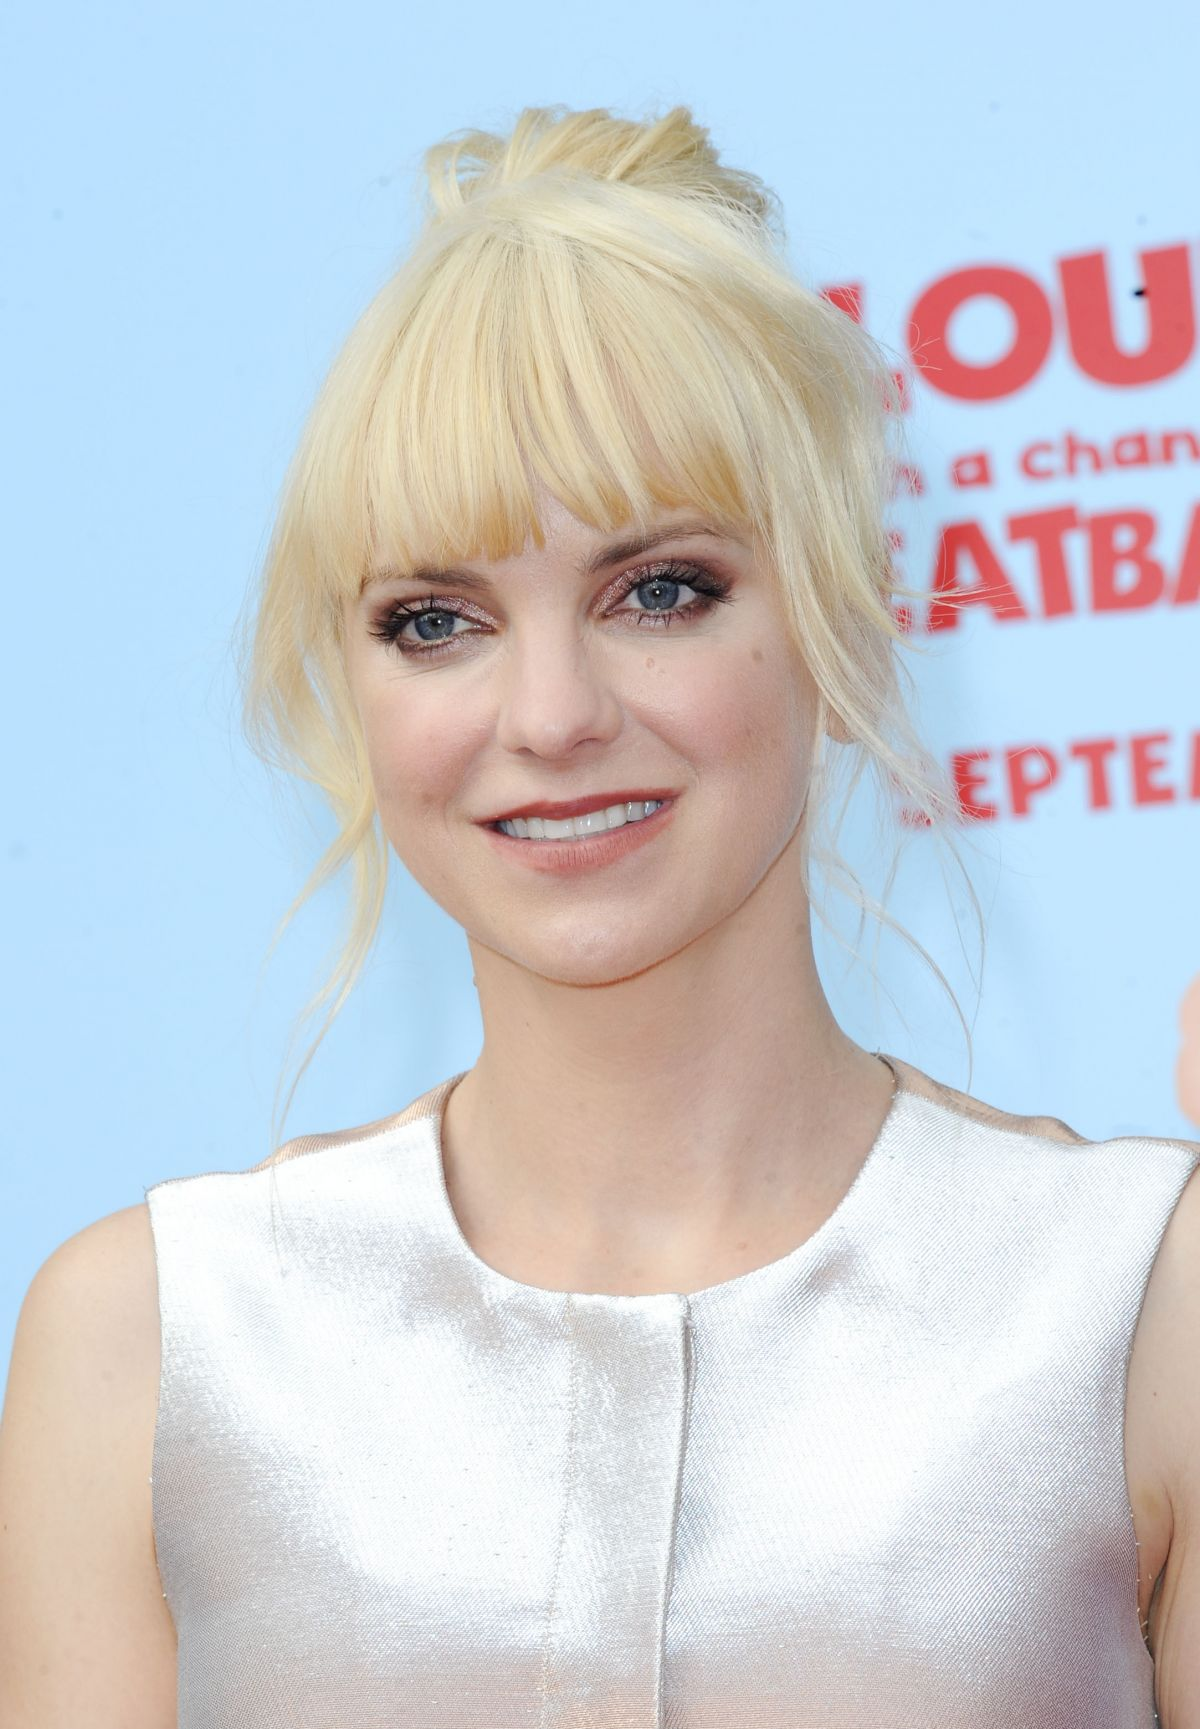 Anna Faris At The Premiere Of Cloudy With A Chance Of Meatballs 2 In LA